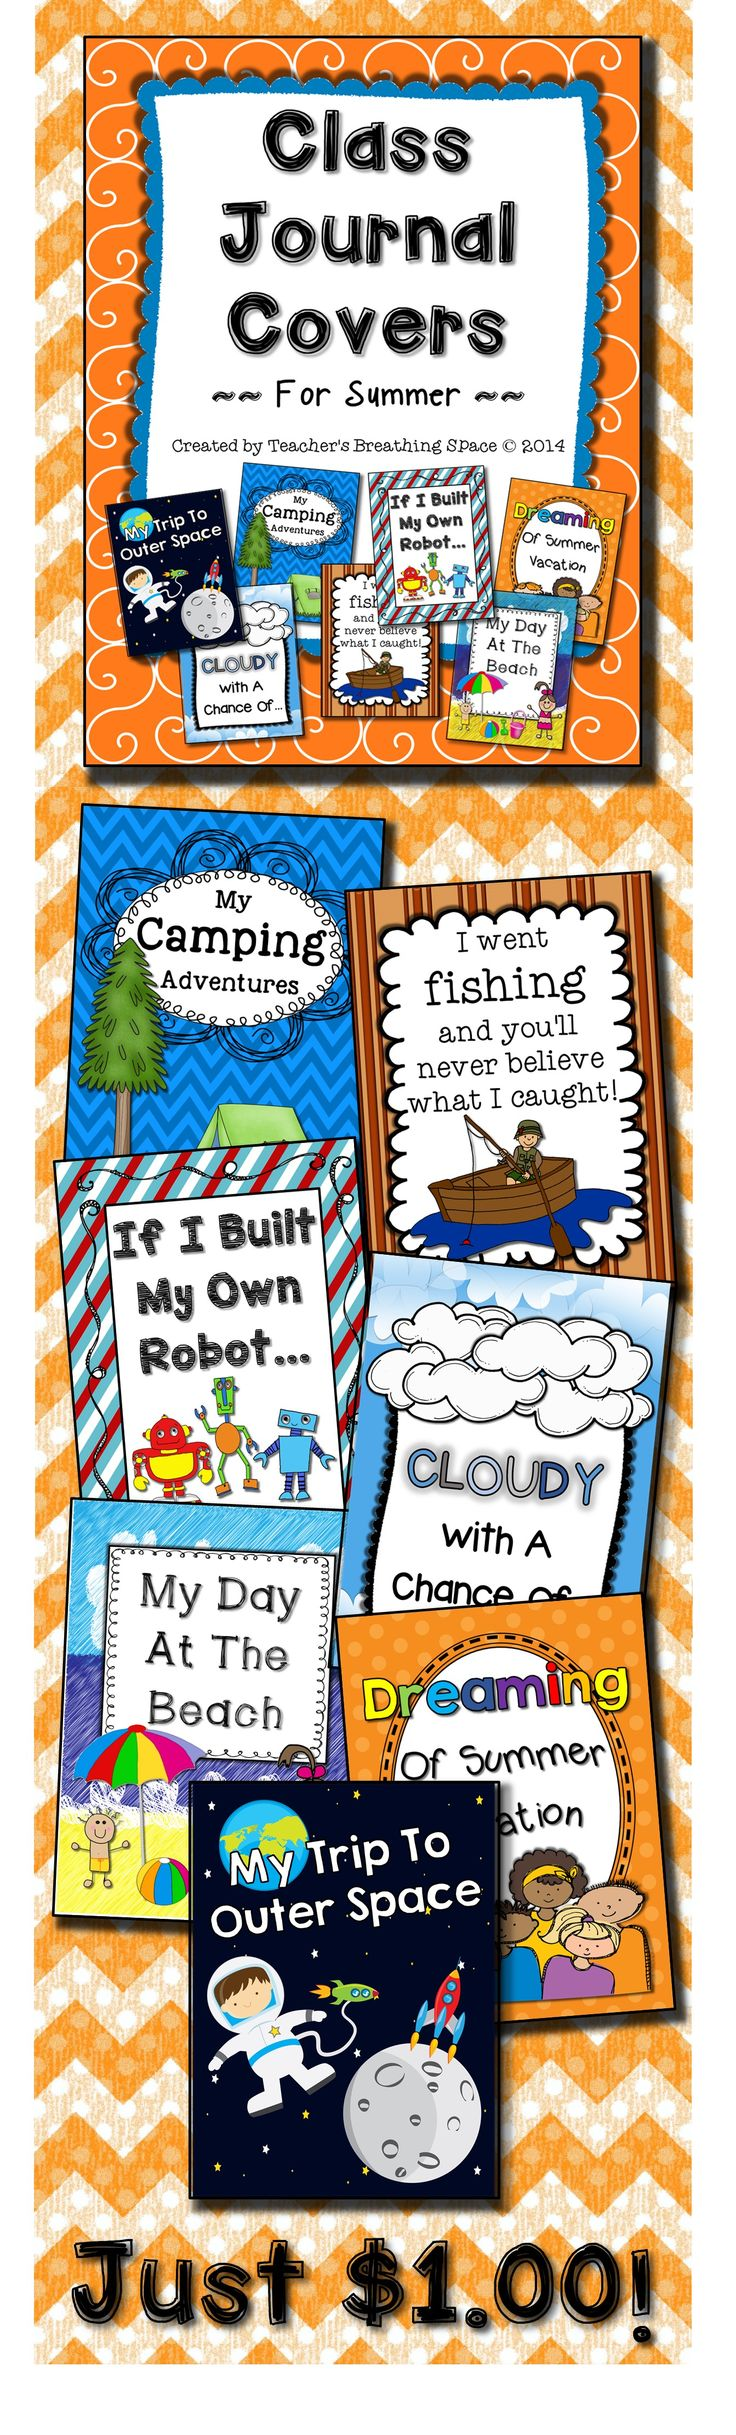 Whole Class Journal Covers for Summer --- Writing Topics for May, June and July --- Just $1.00 for the set!